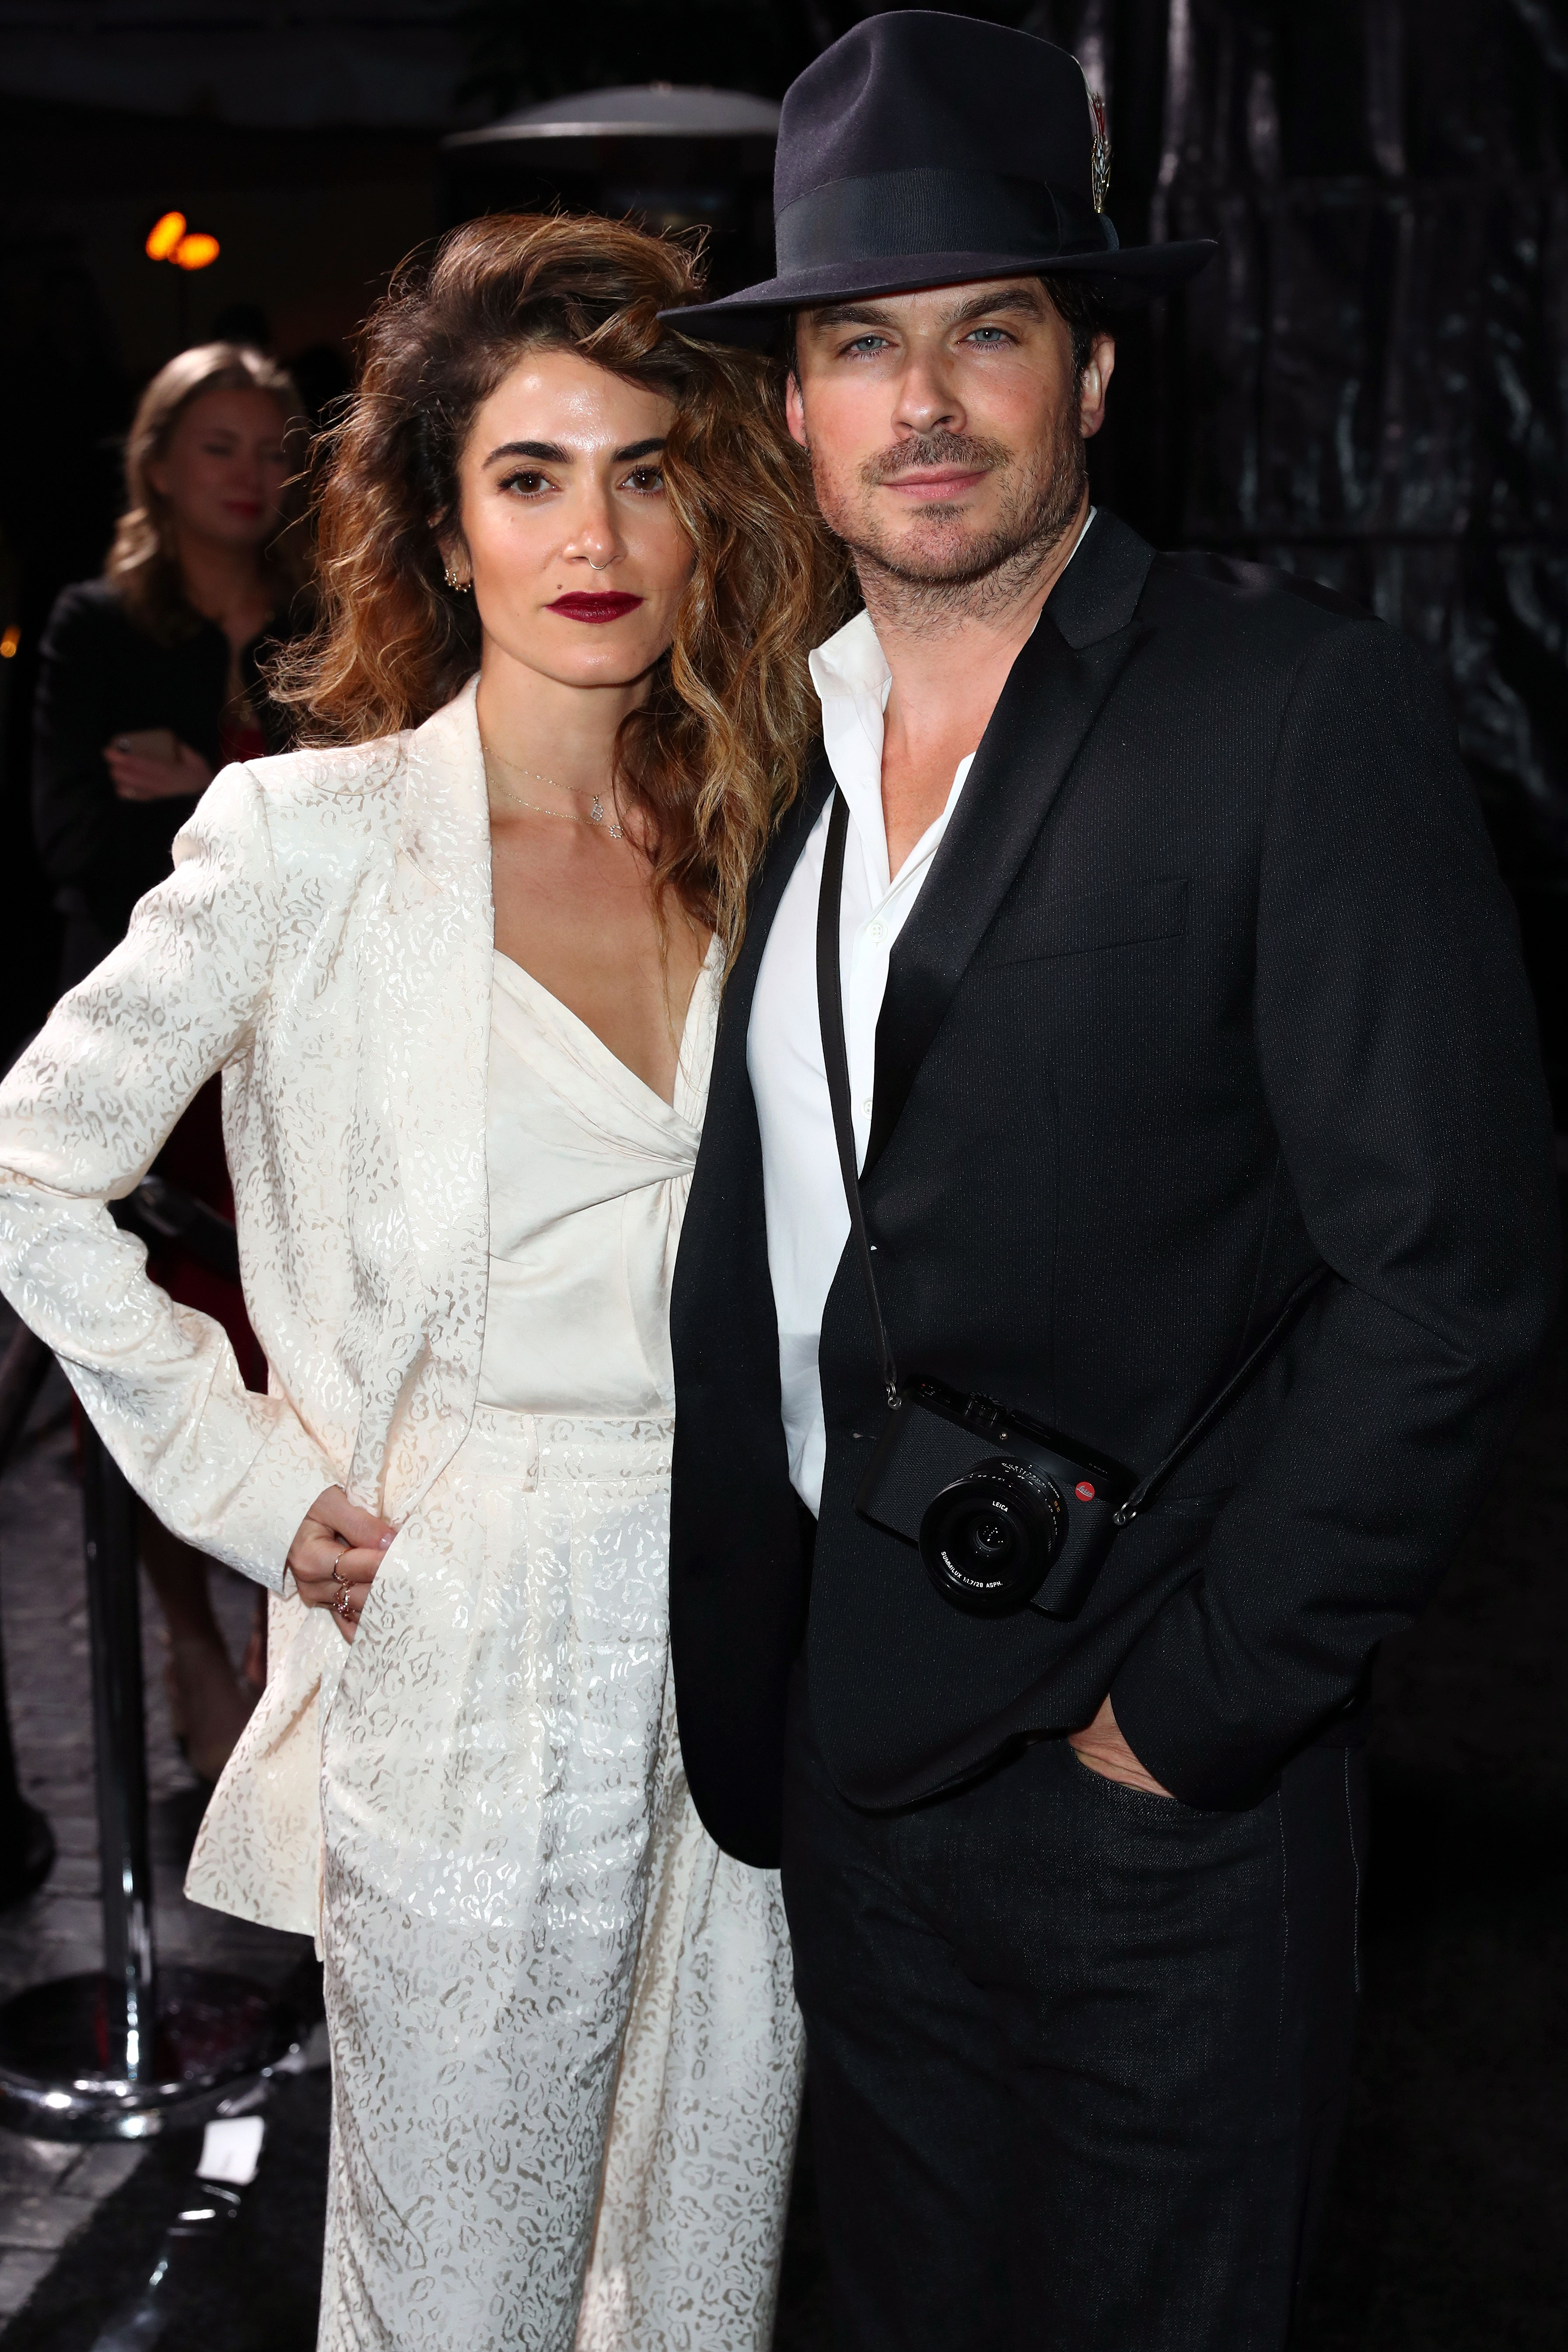 """Nikki Reed and Ian Somerhalder - The Twilight alum and the former Vampire Diaries lead stood side by side at the Cadillac event on Thursday, February 21. The couple, who got married in April 2015 and welcomed a baby girl two years later, """"held hands while walking upstairs to the party and they were inseparable all night,"""" a source told Us."""